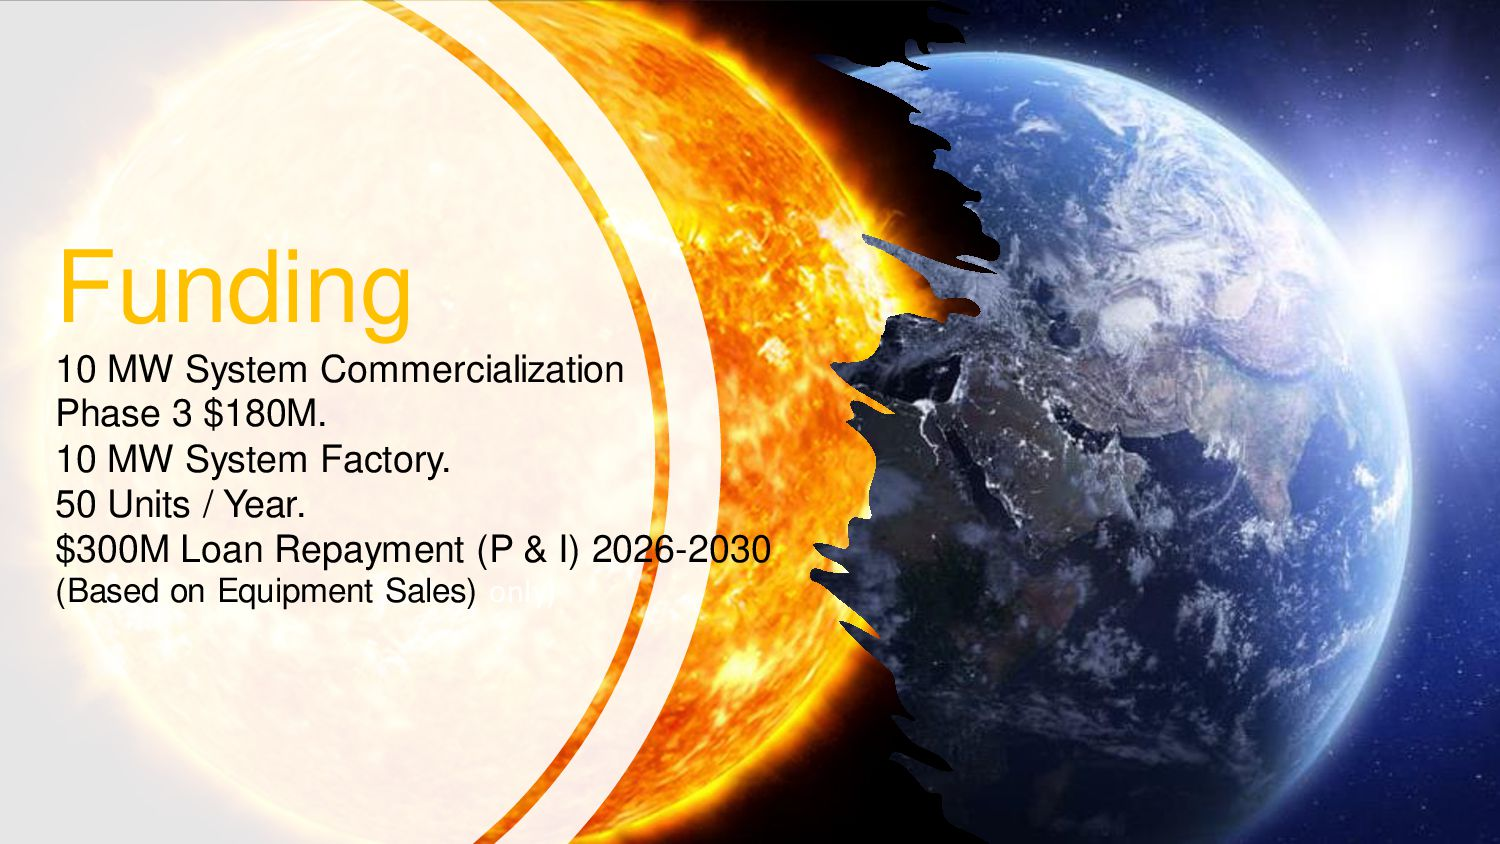 Funding 10 MW System Commercialization Phase 3 ...